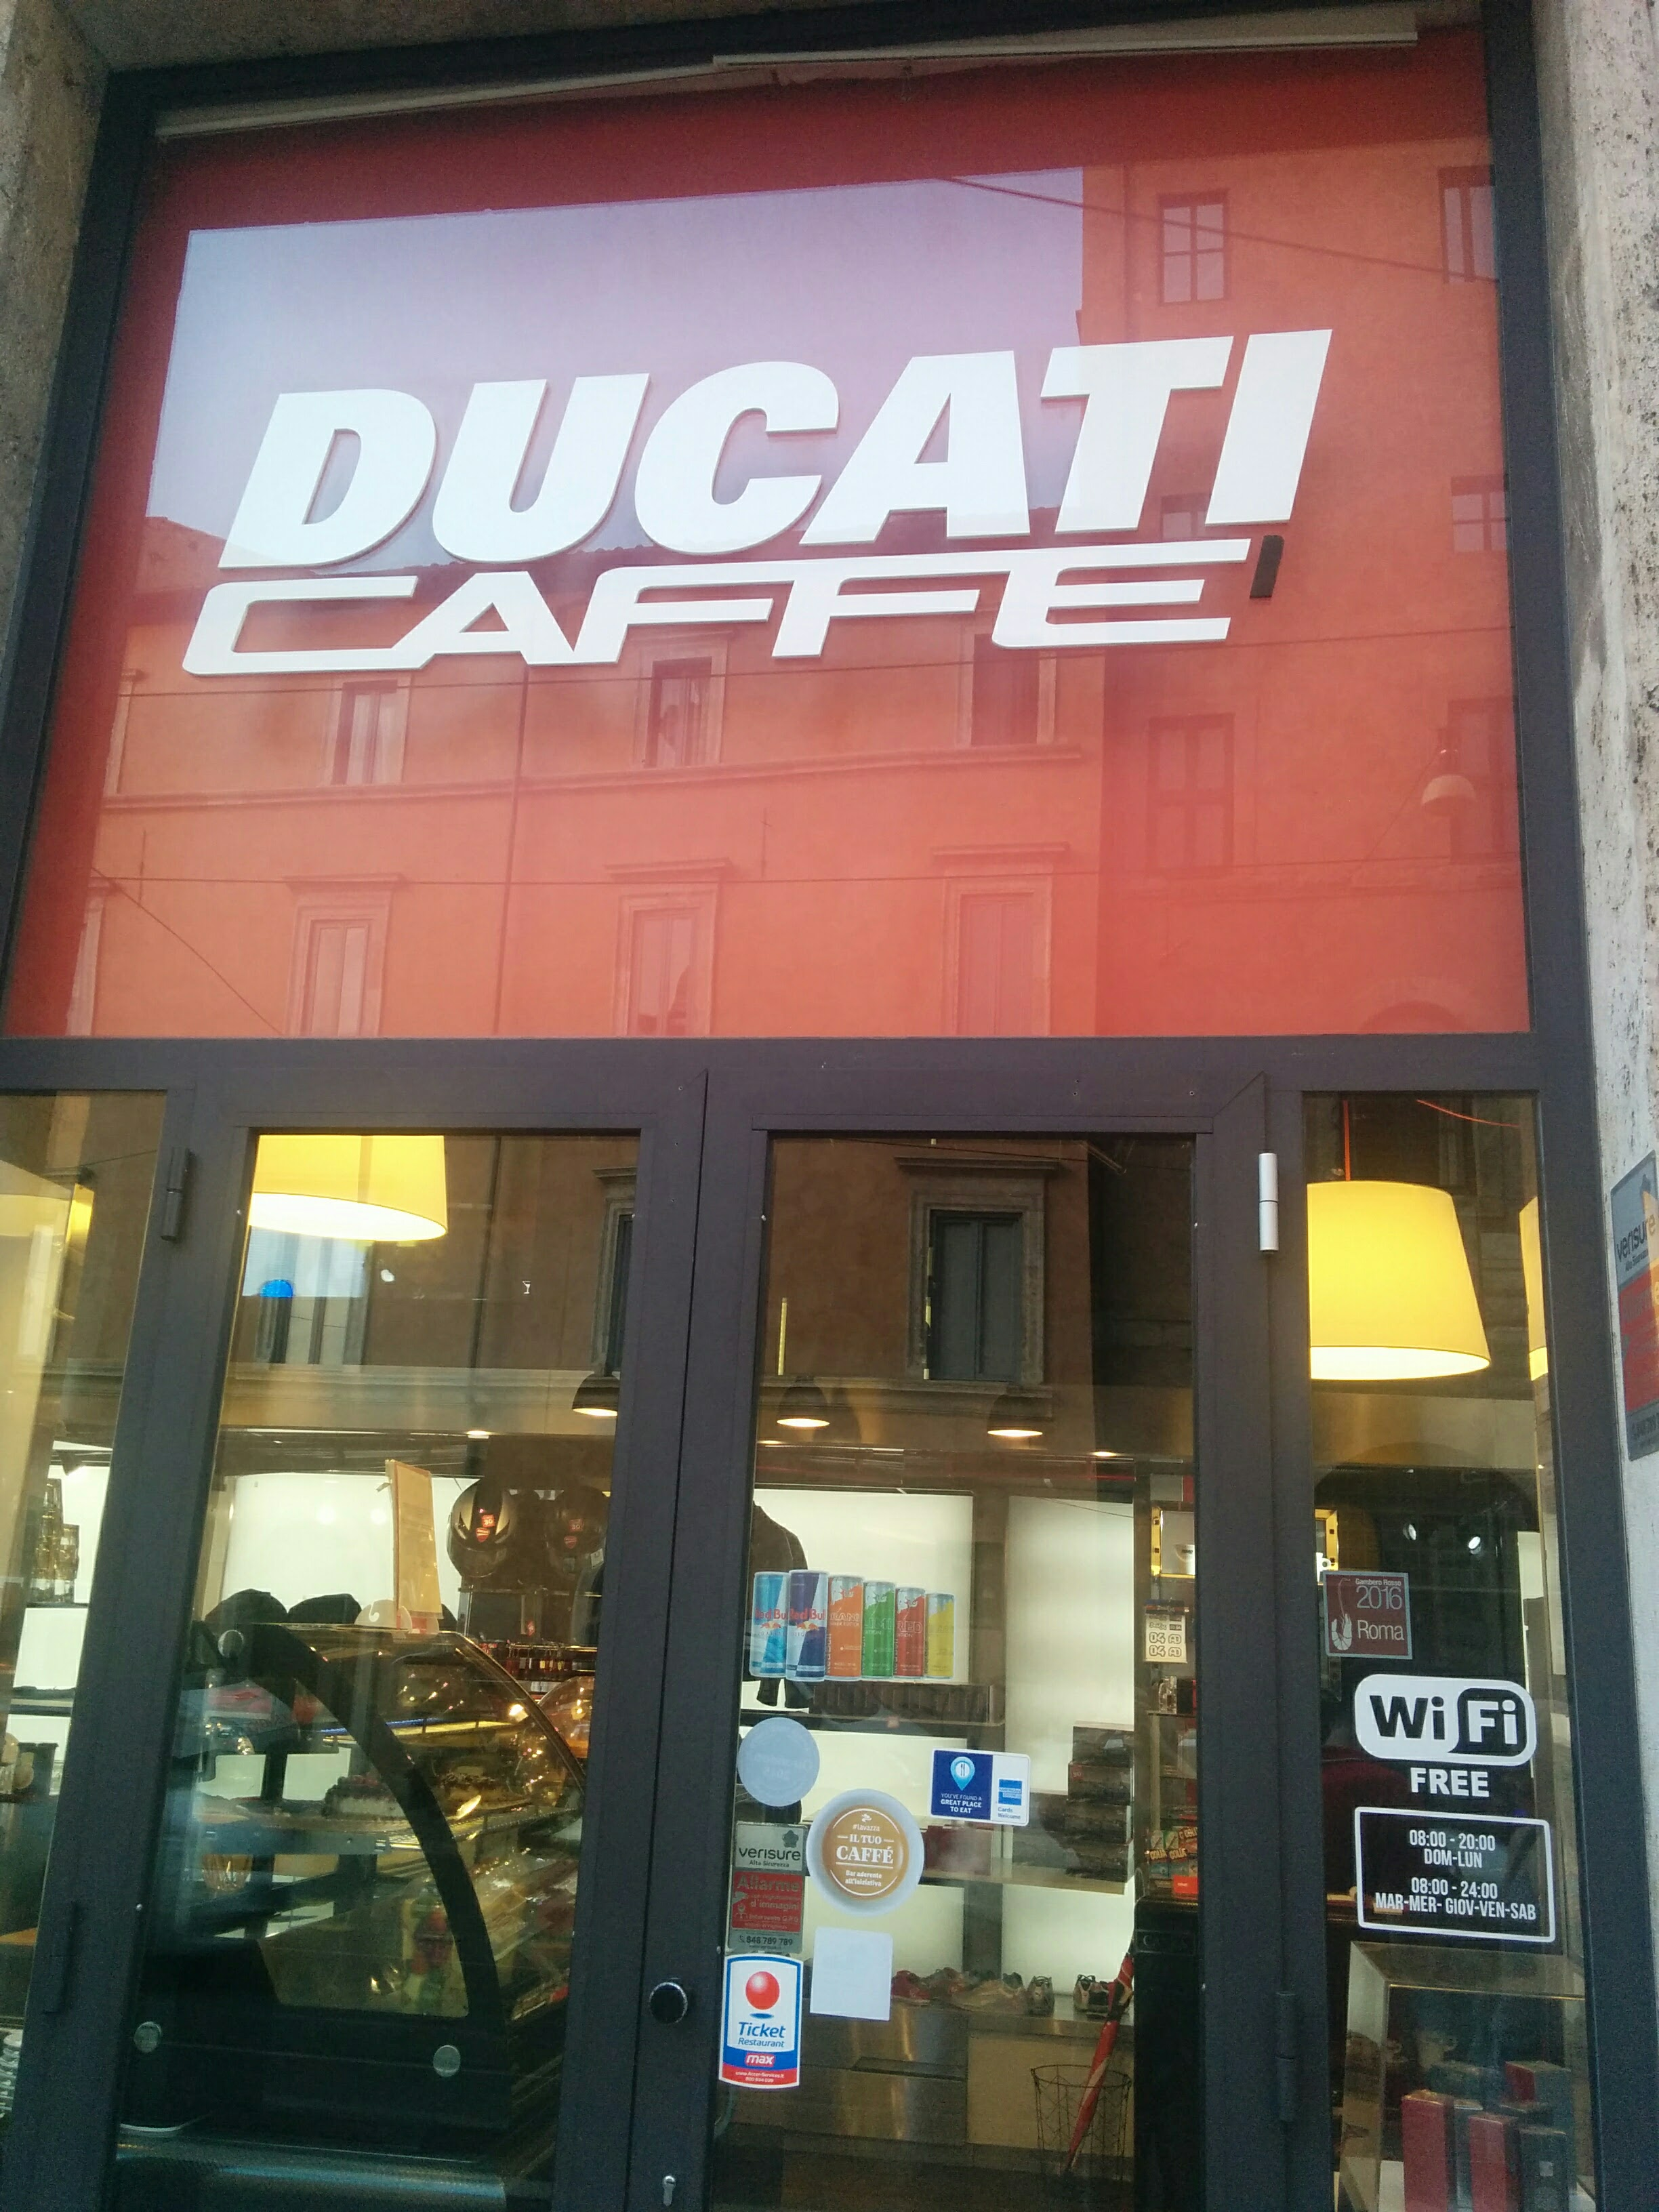 The Ducati Caffe! It was themed with all things Ducati